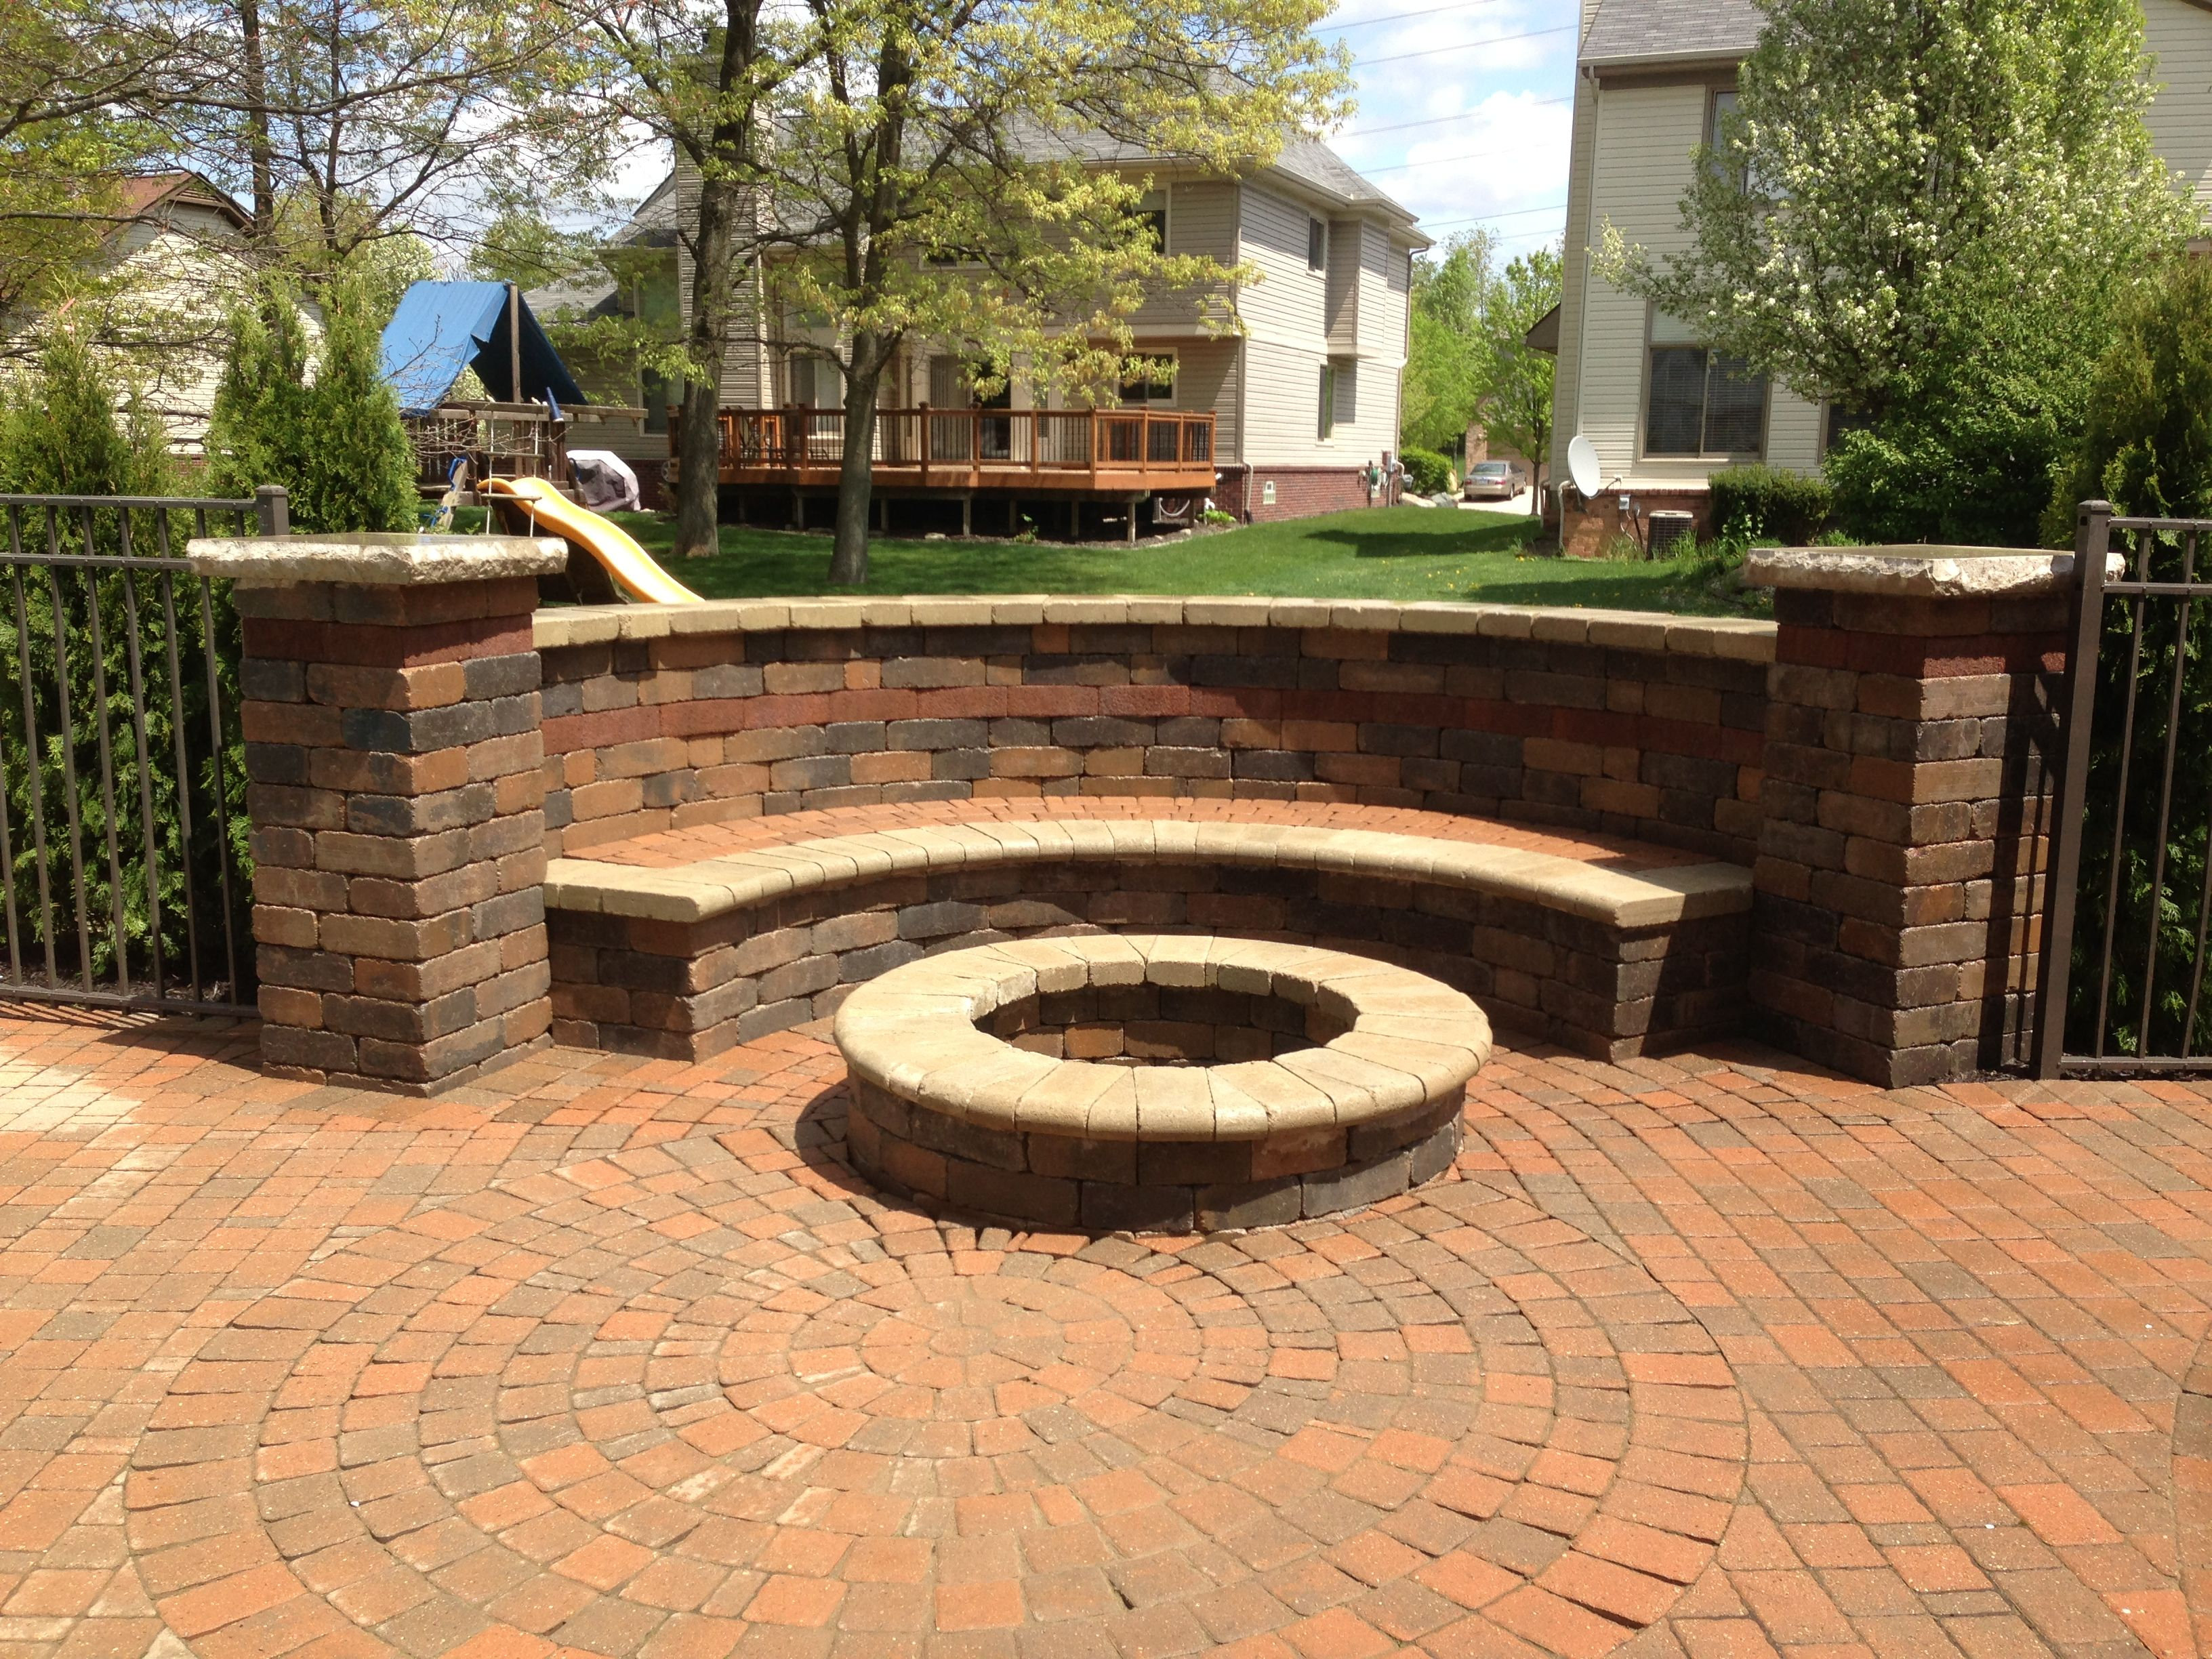 Brick paver bench with fire pit Beautiful tumble